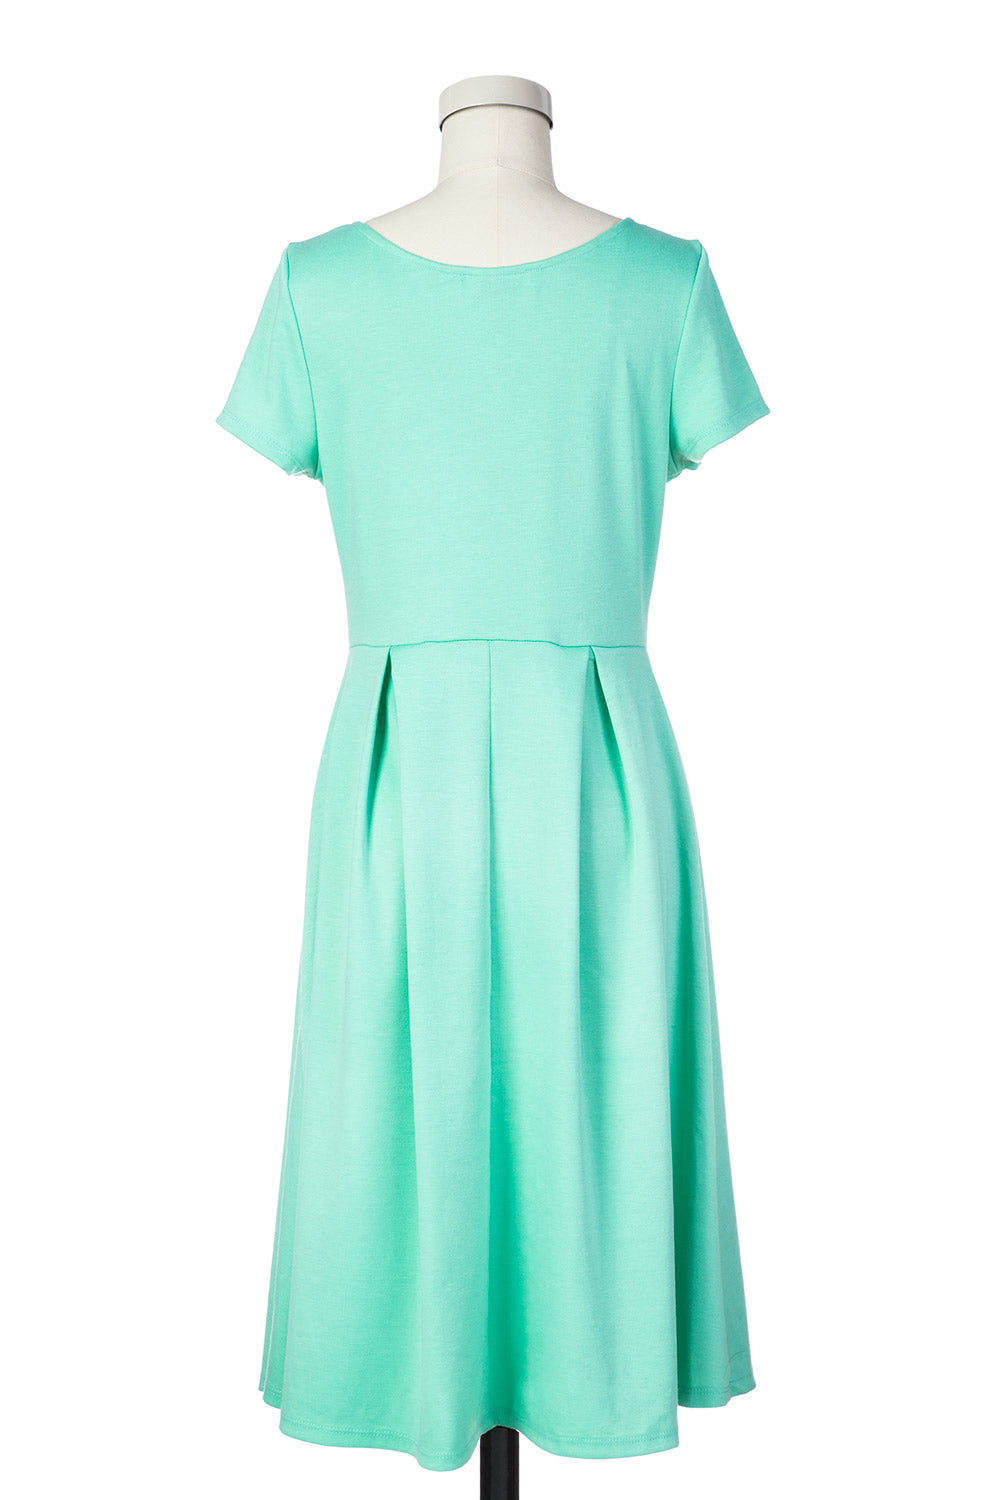 Type 1 Mint for You Dress